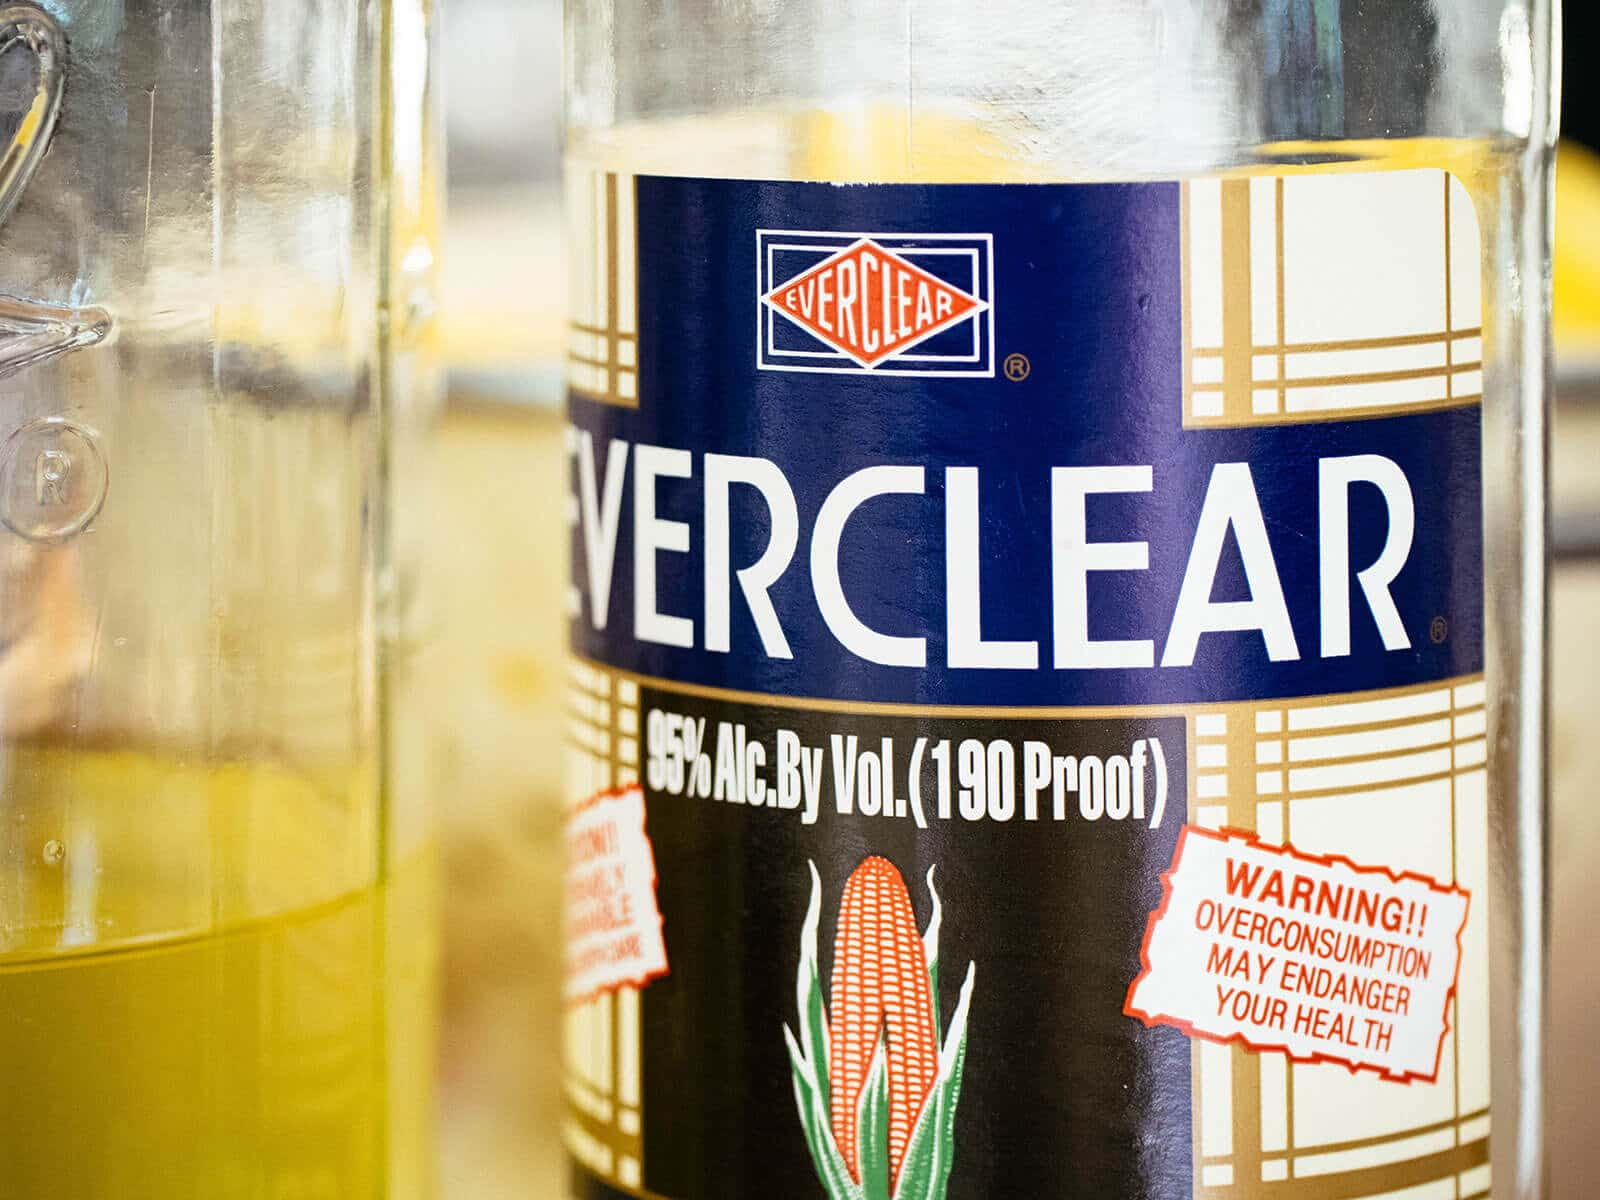 Close-up of Everclear bottle label